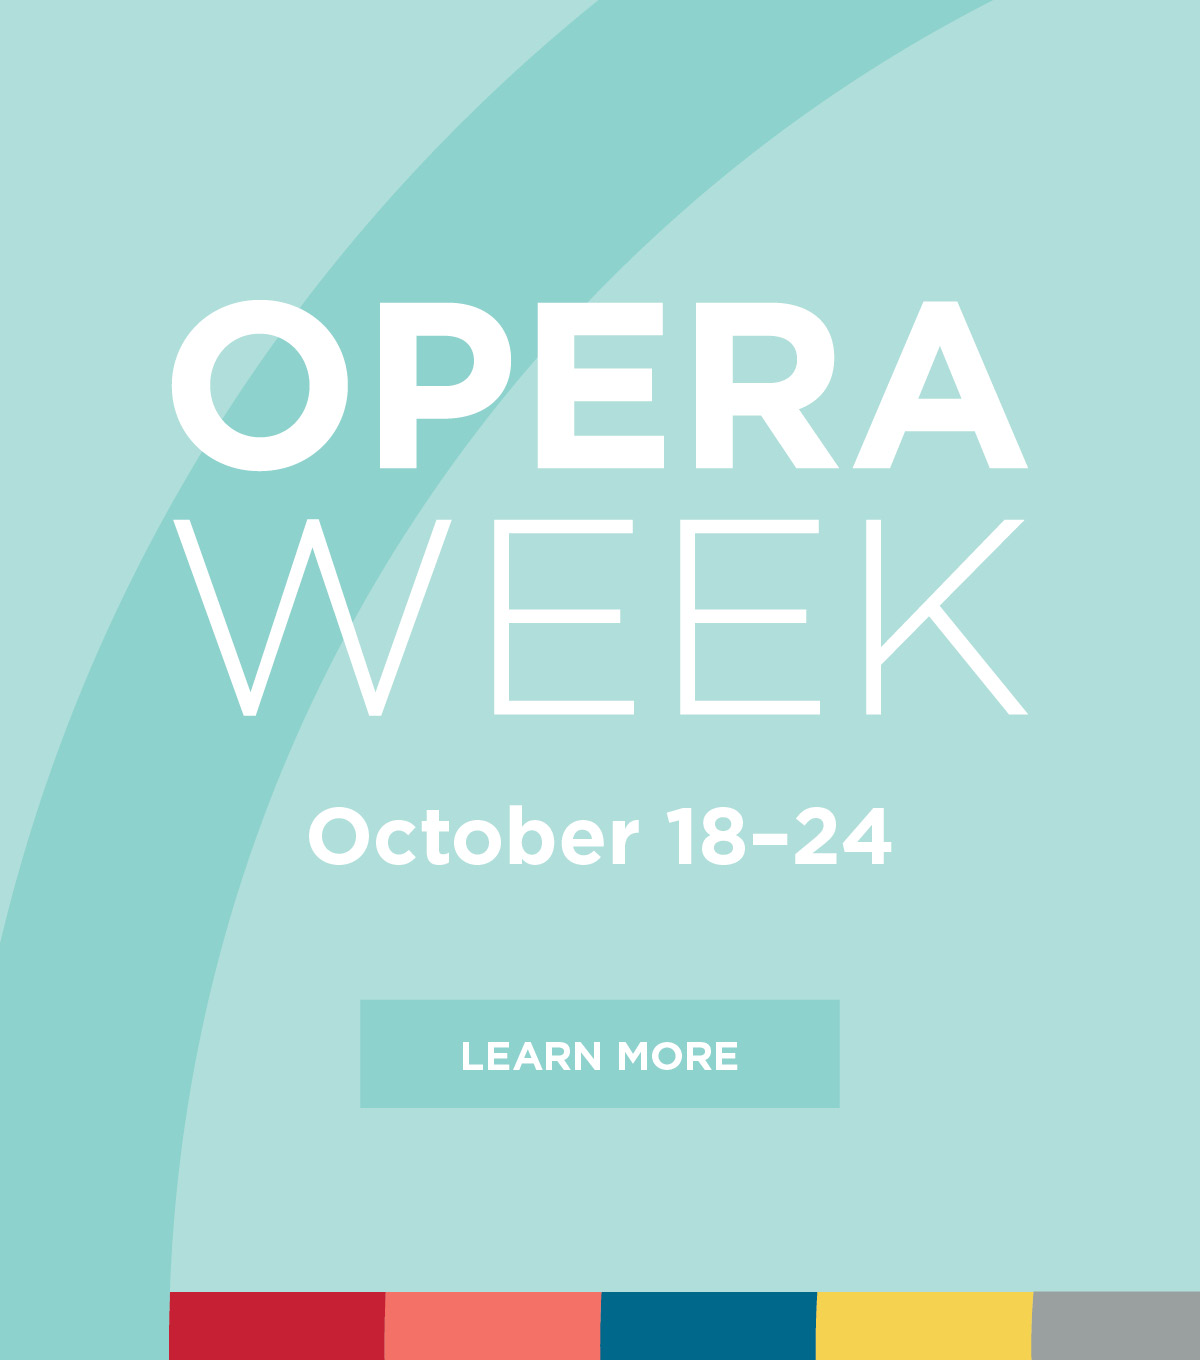 Opera Week; October 18-24; Learn More button